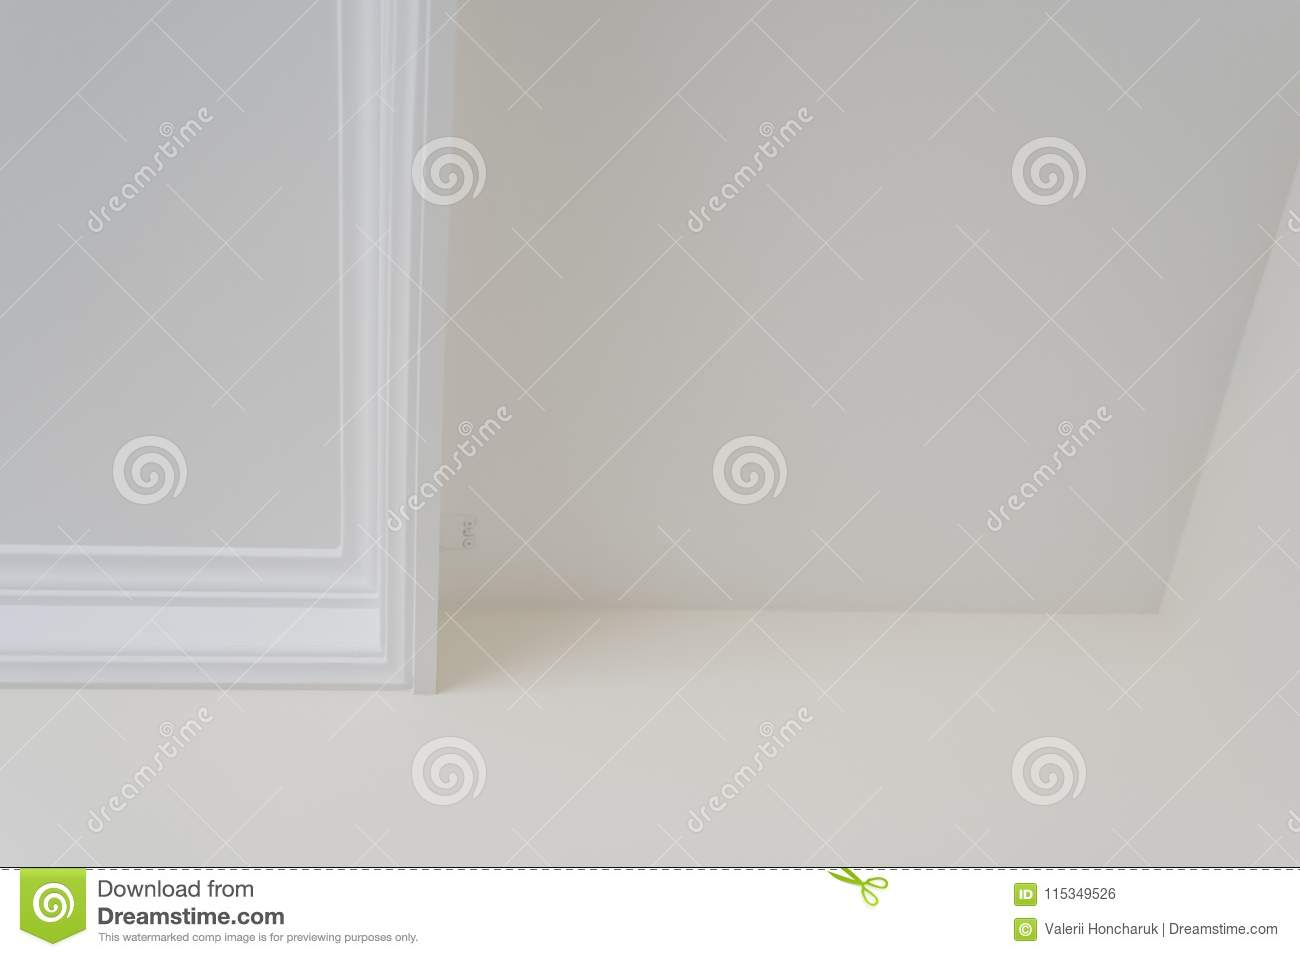 White decorative ceiling molding.